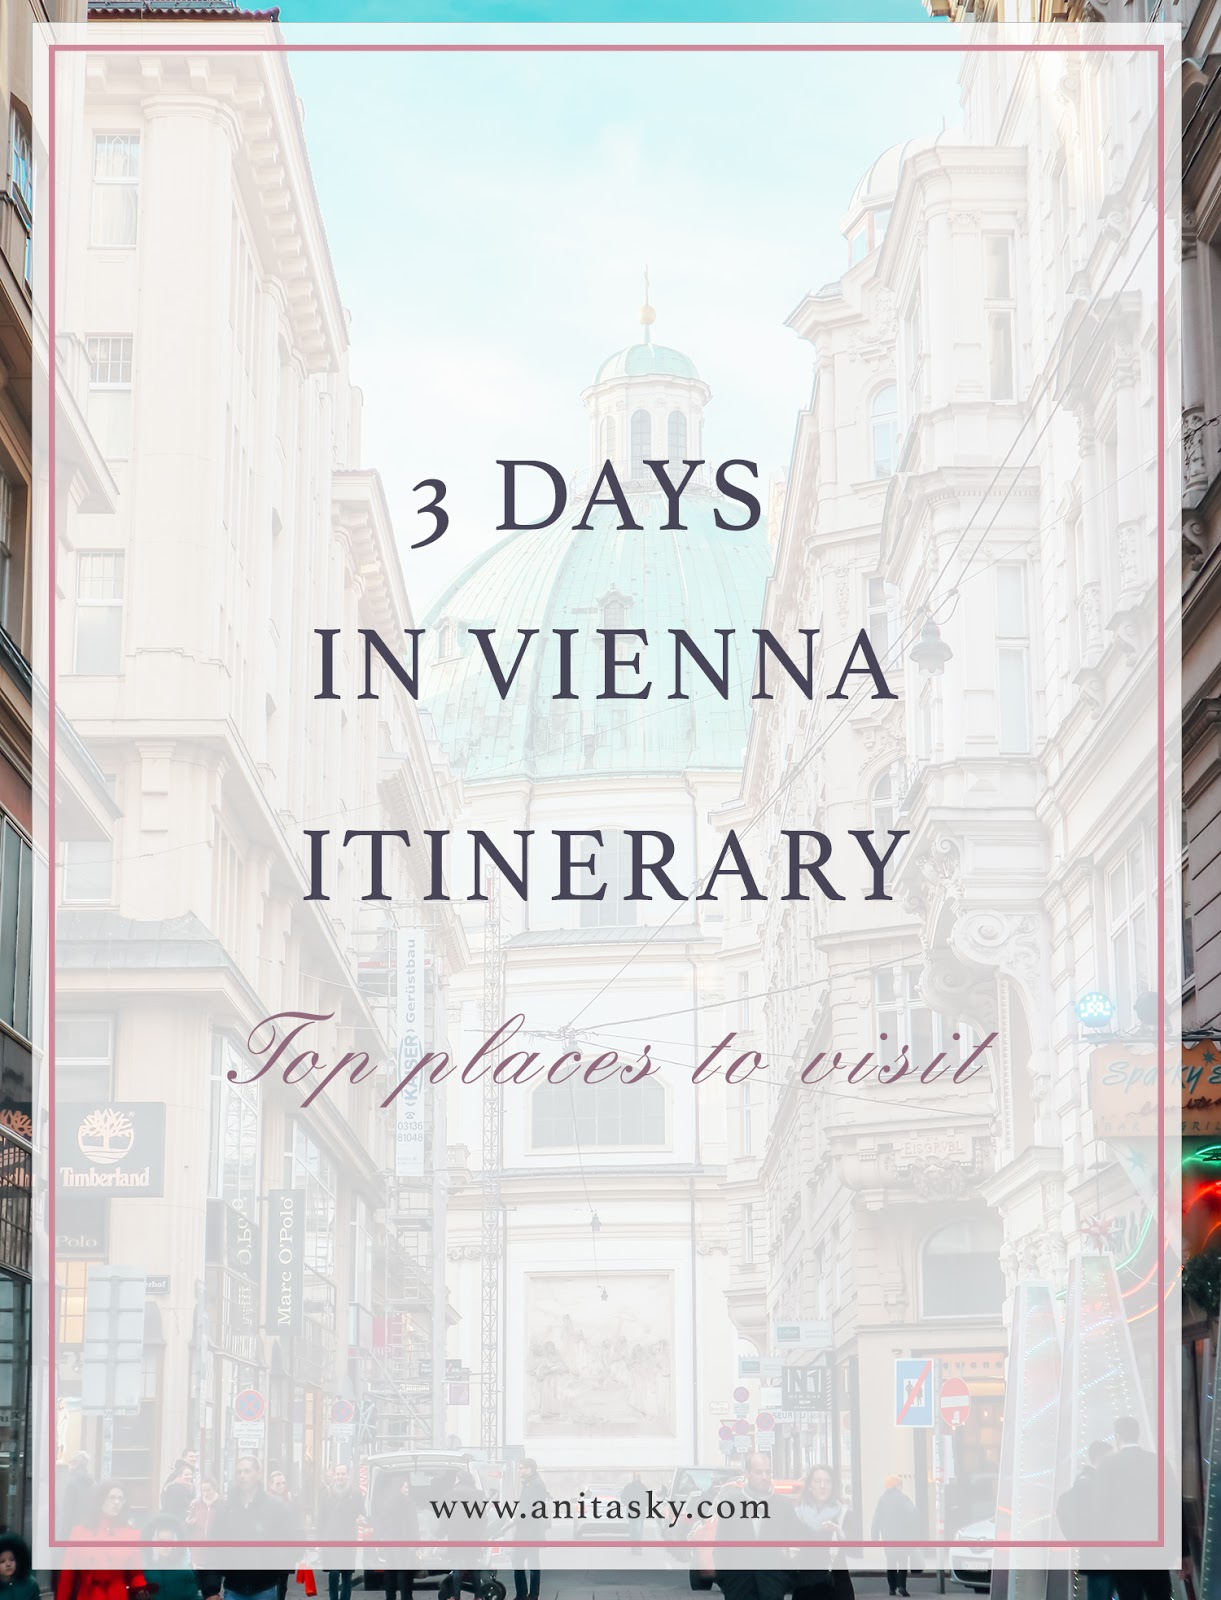 3 days in Vienna Itinerary